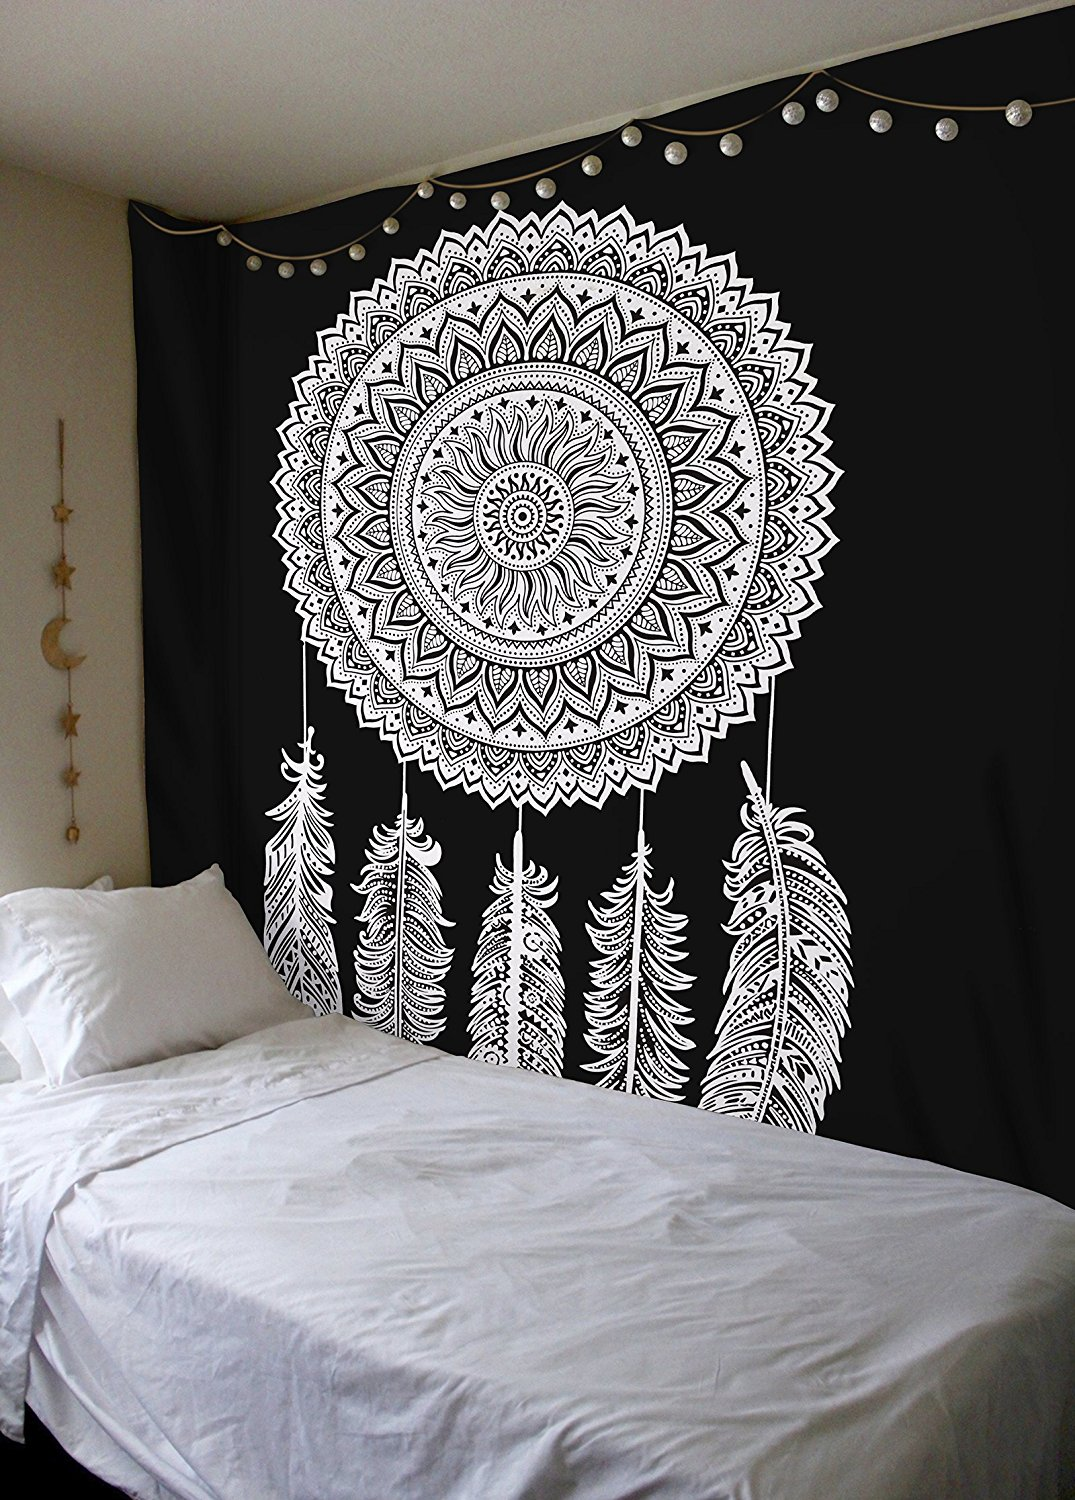 Dream Catcher Above Bed Queen Black White Dream Catcher Mandala Wall Hanging Cotton 25